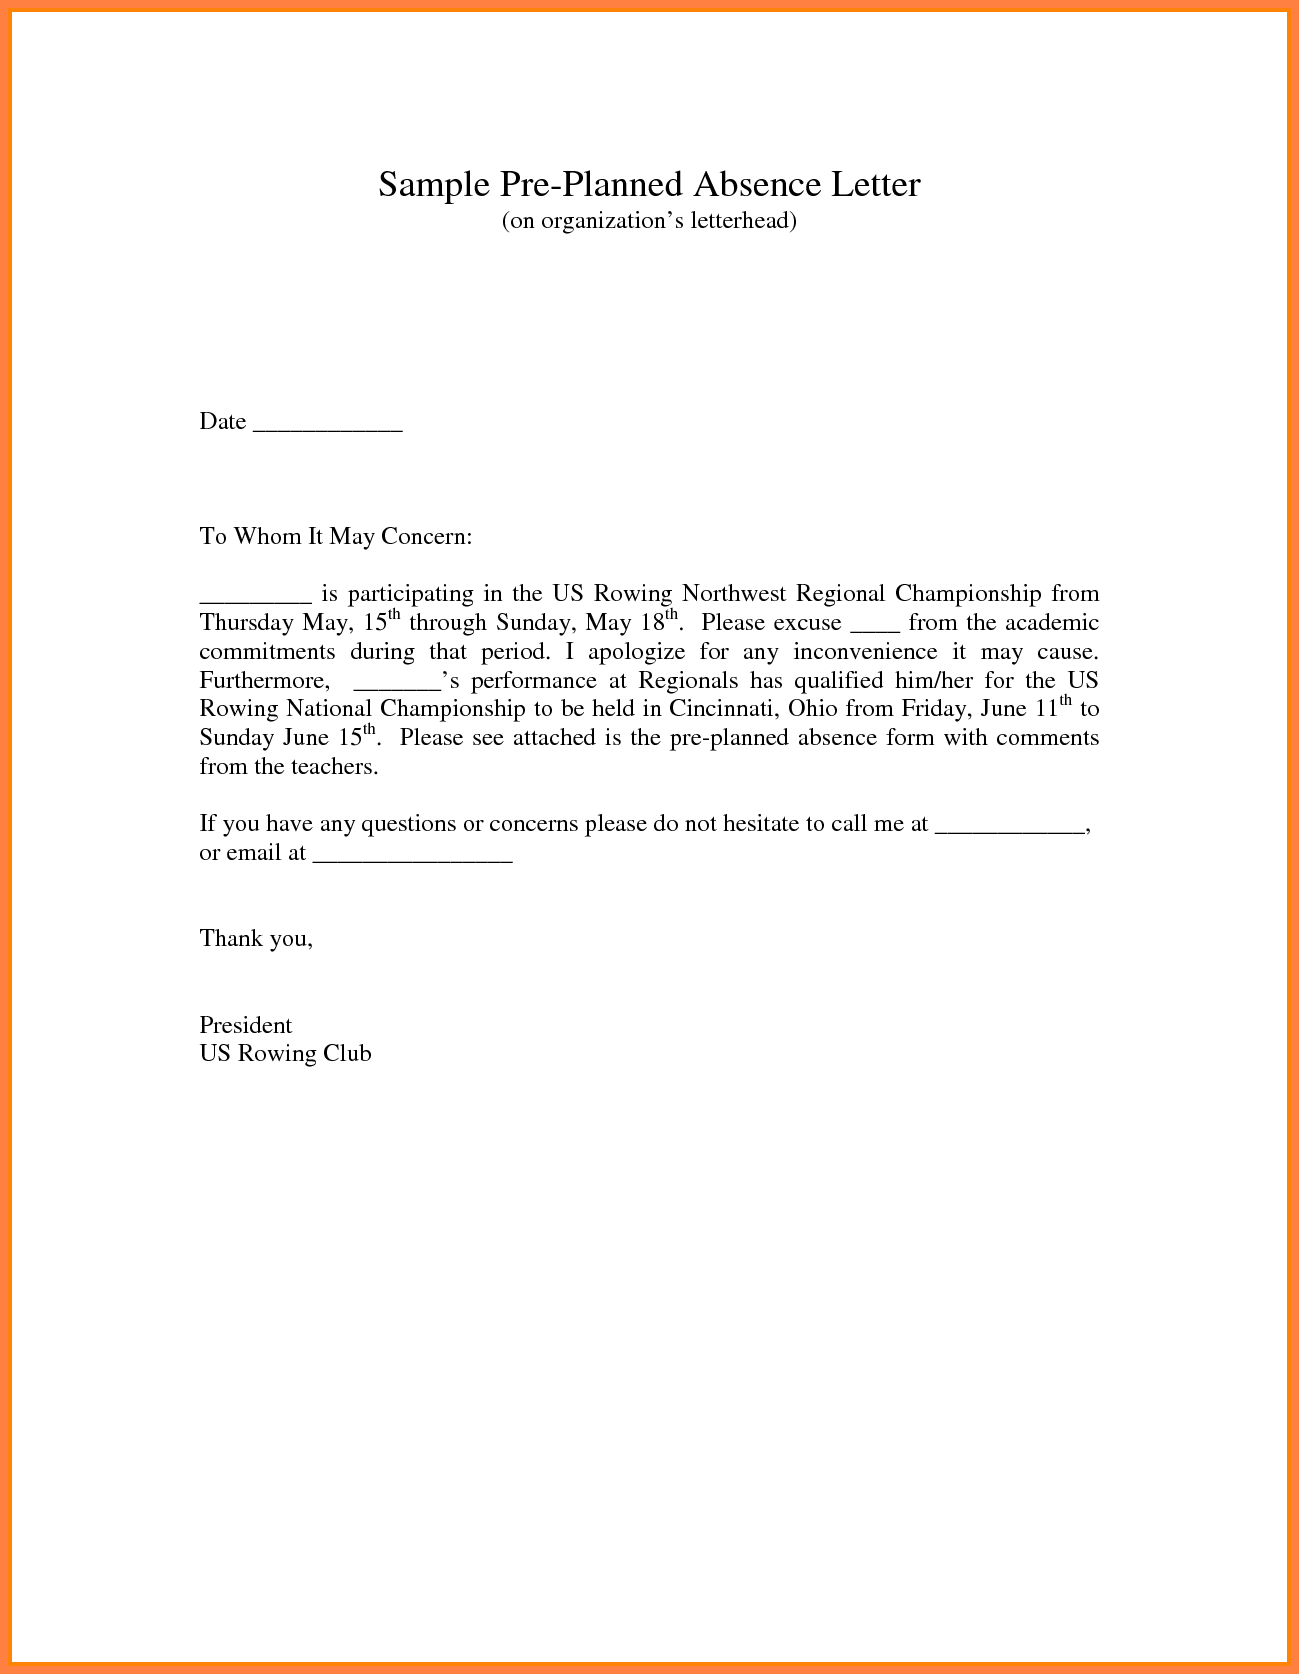 Fake Invoice Template and 7 Medical Excuse Letter Invoice Example 2017